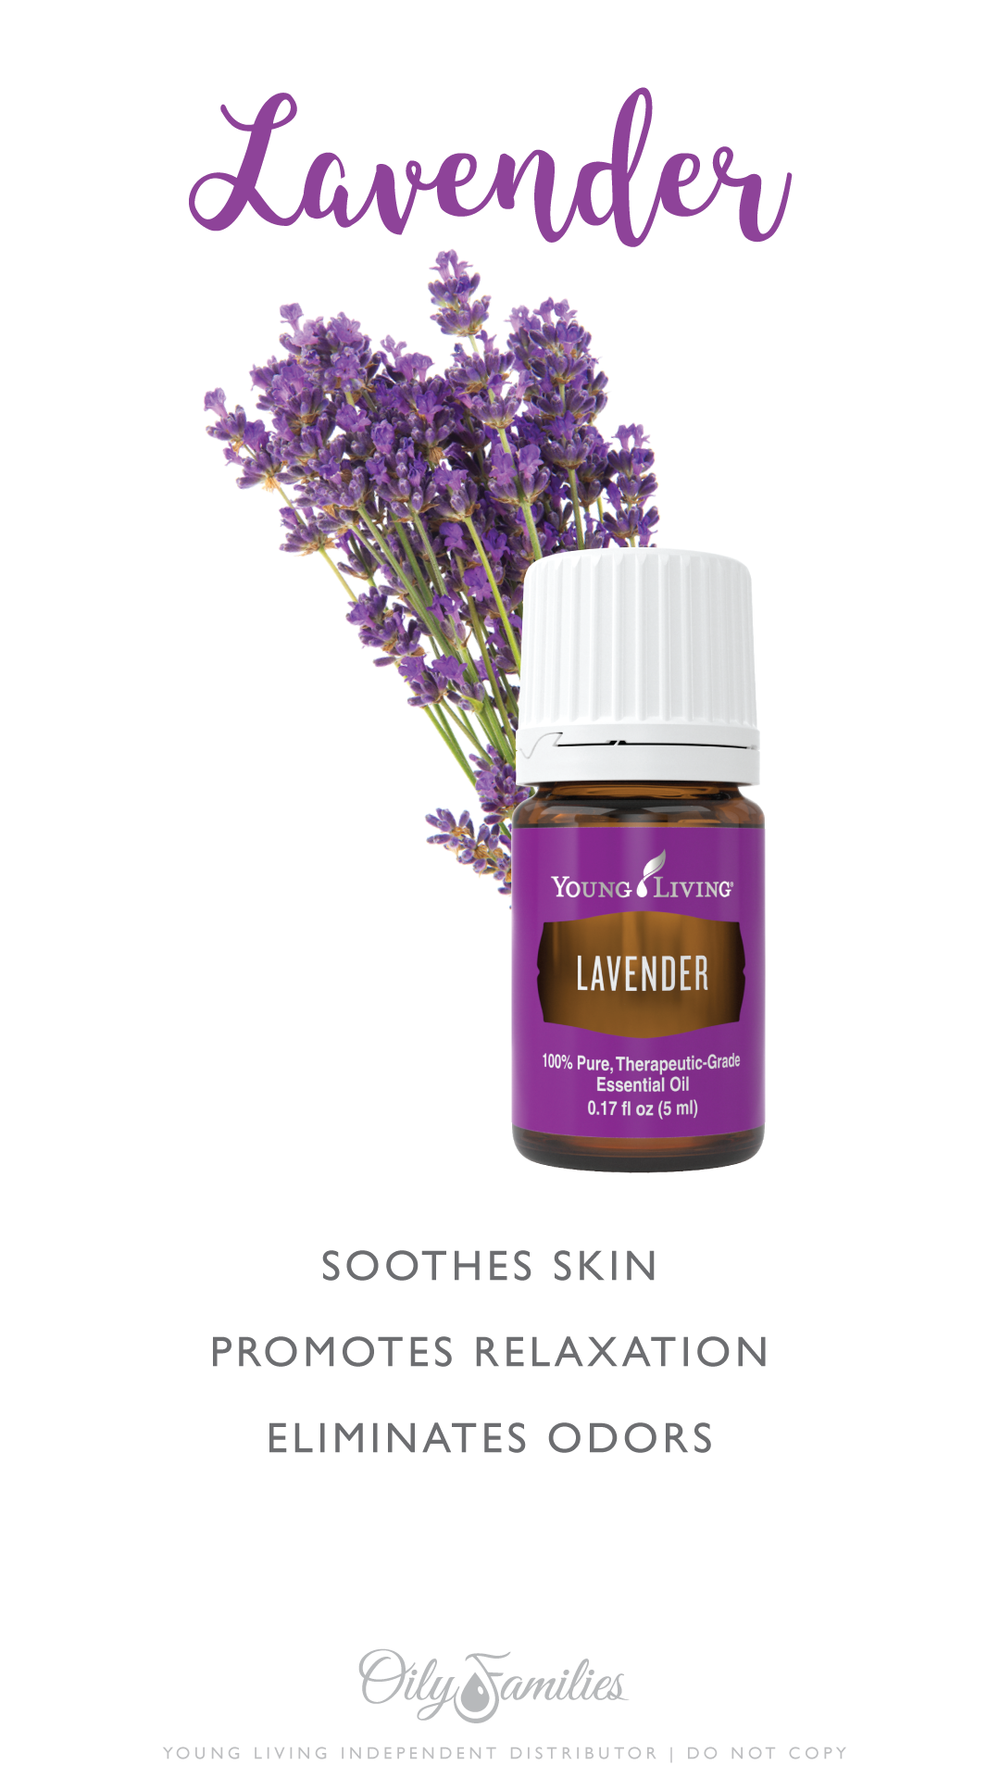 Young Living Beaumont TX, essential oils Southeast Texas, essential oils SETX, Port Arthur Young Living, Silsbee Young Living, essential oils Big Thicket,